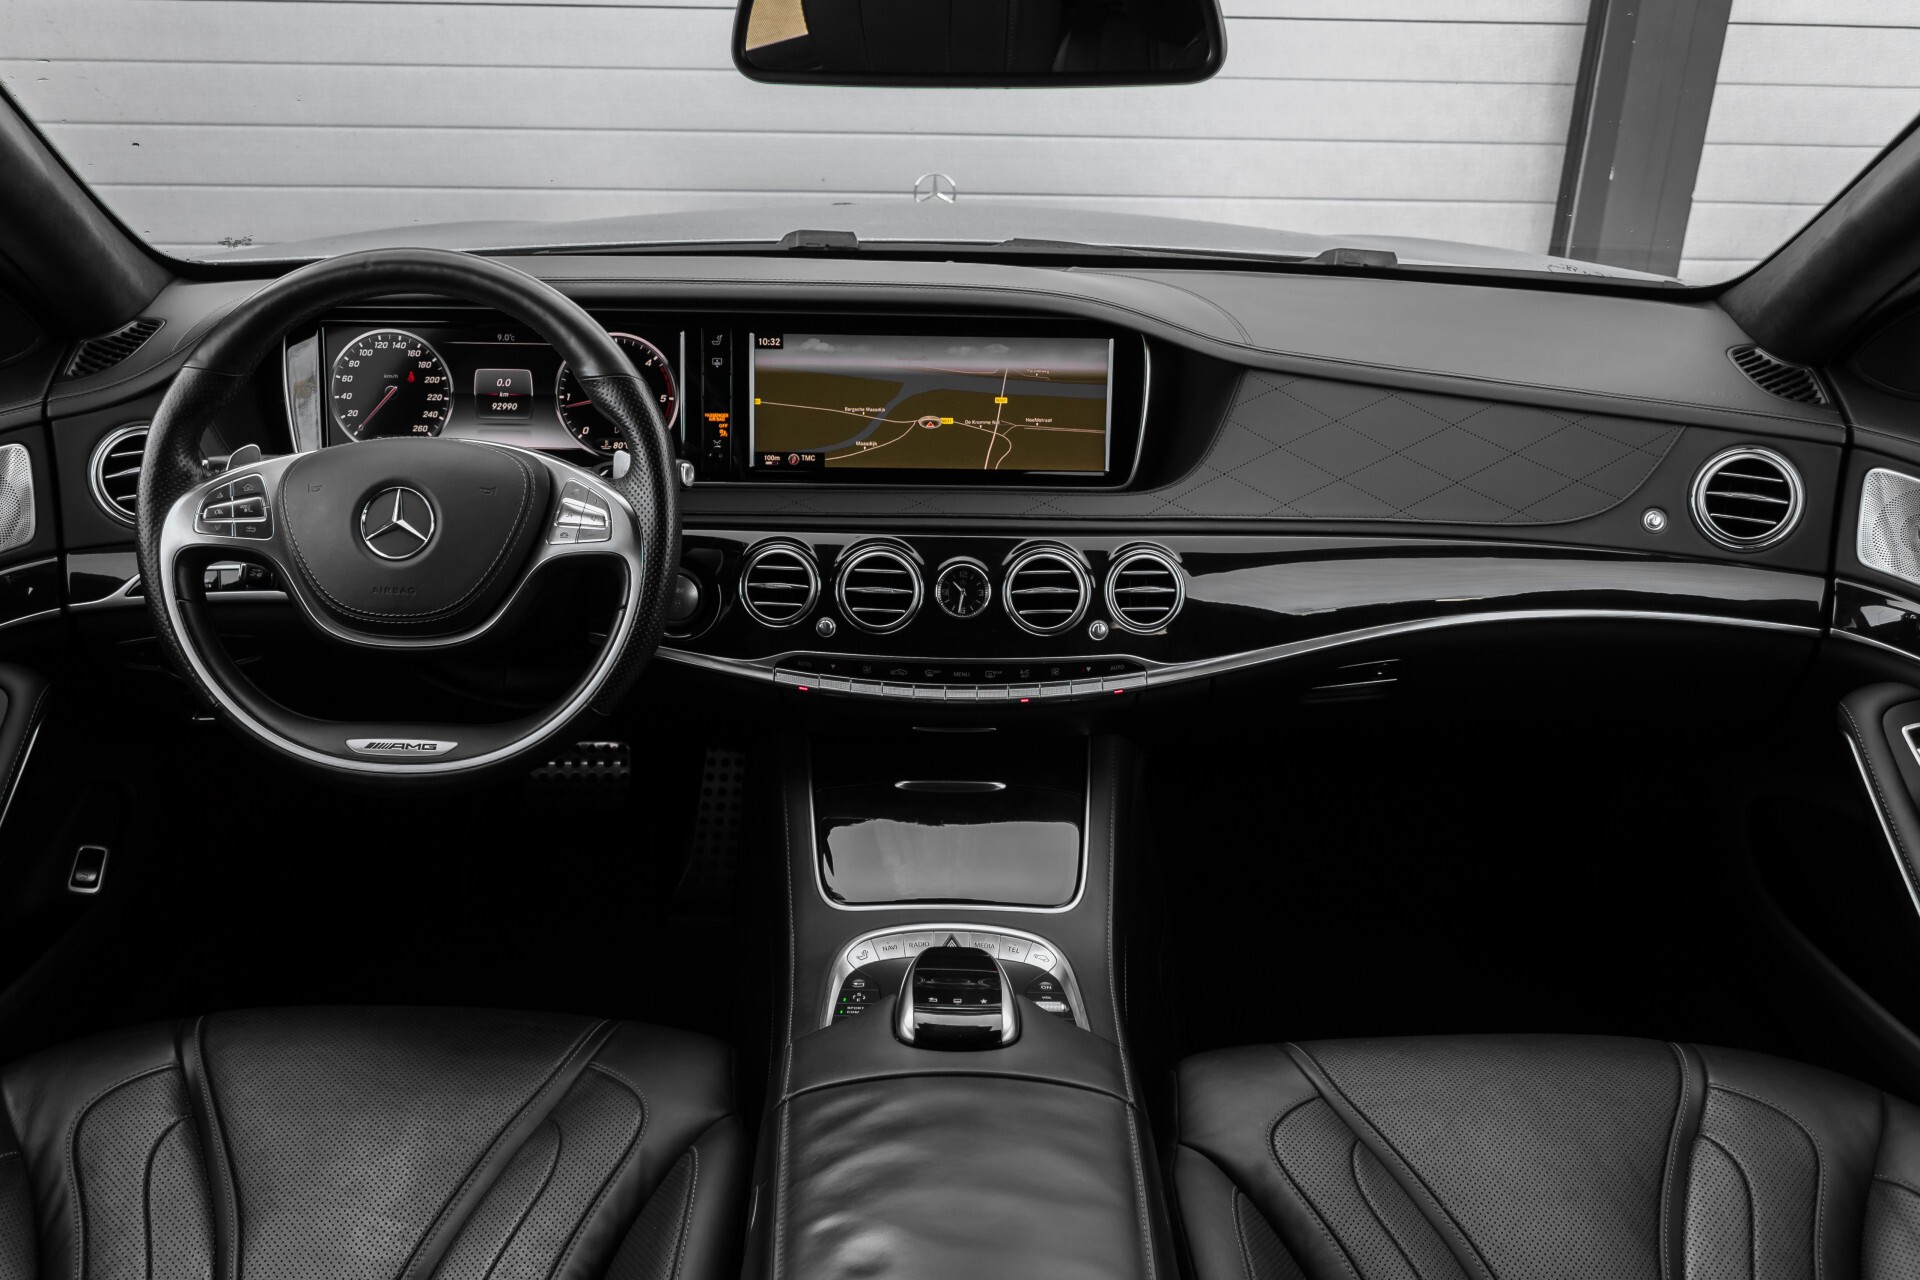 Mercedes-Benz S-Klasse 350 Bluetec 4-M AMG Plus Exclusive Distronic/Keyless/Panorama Aut7 Foto 8